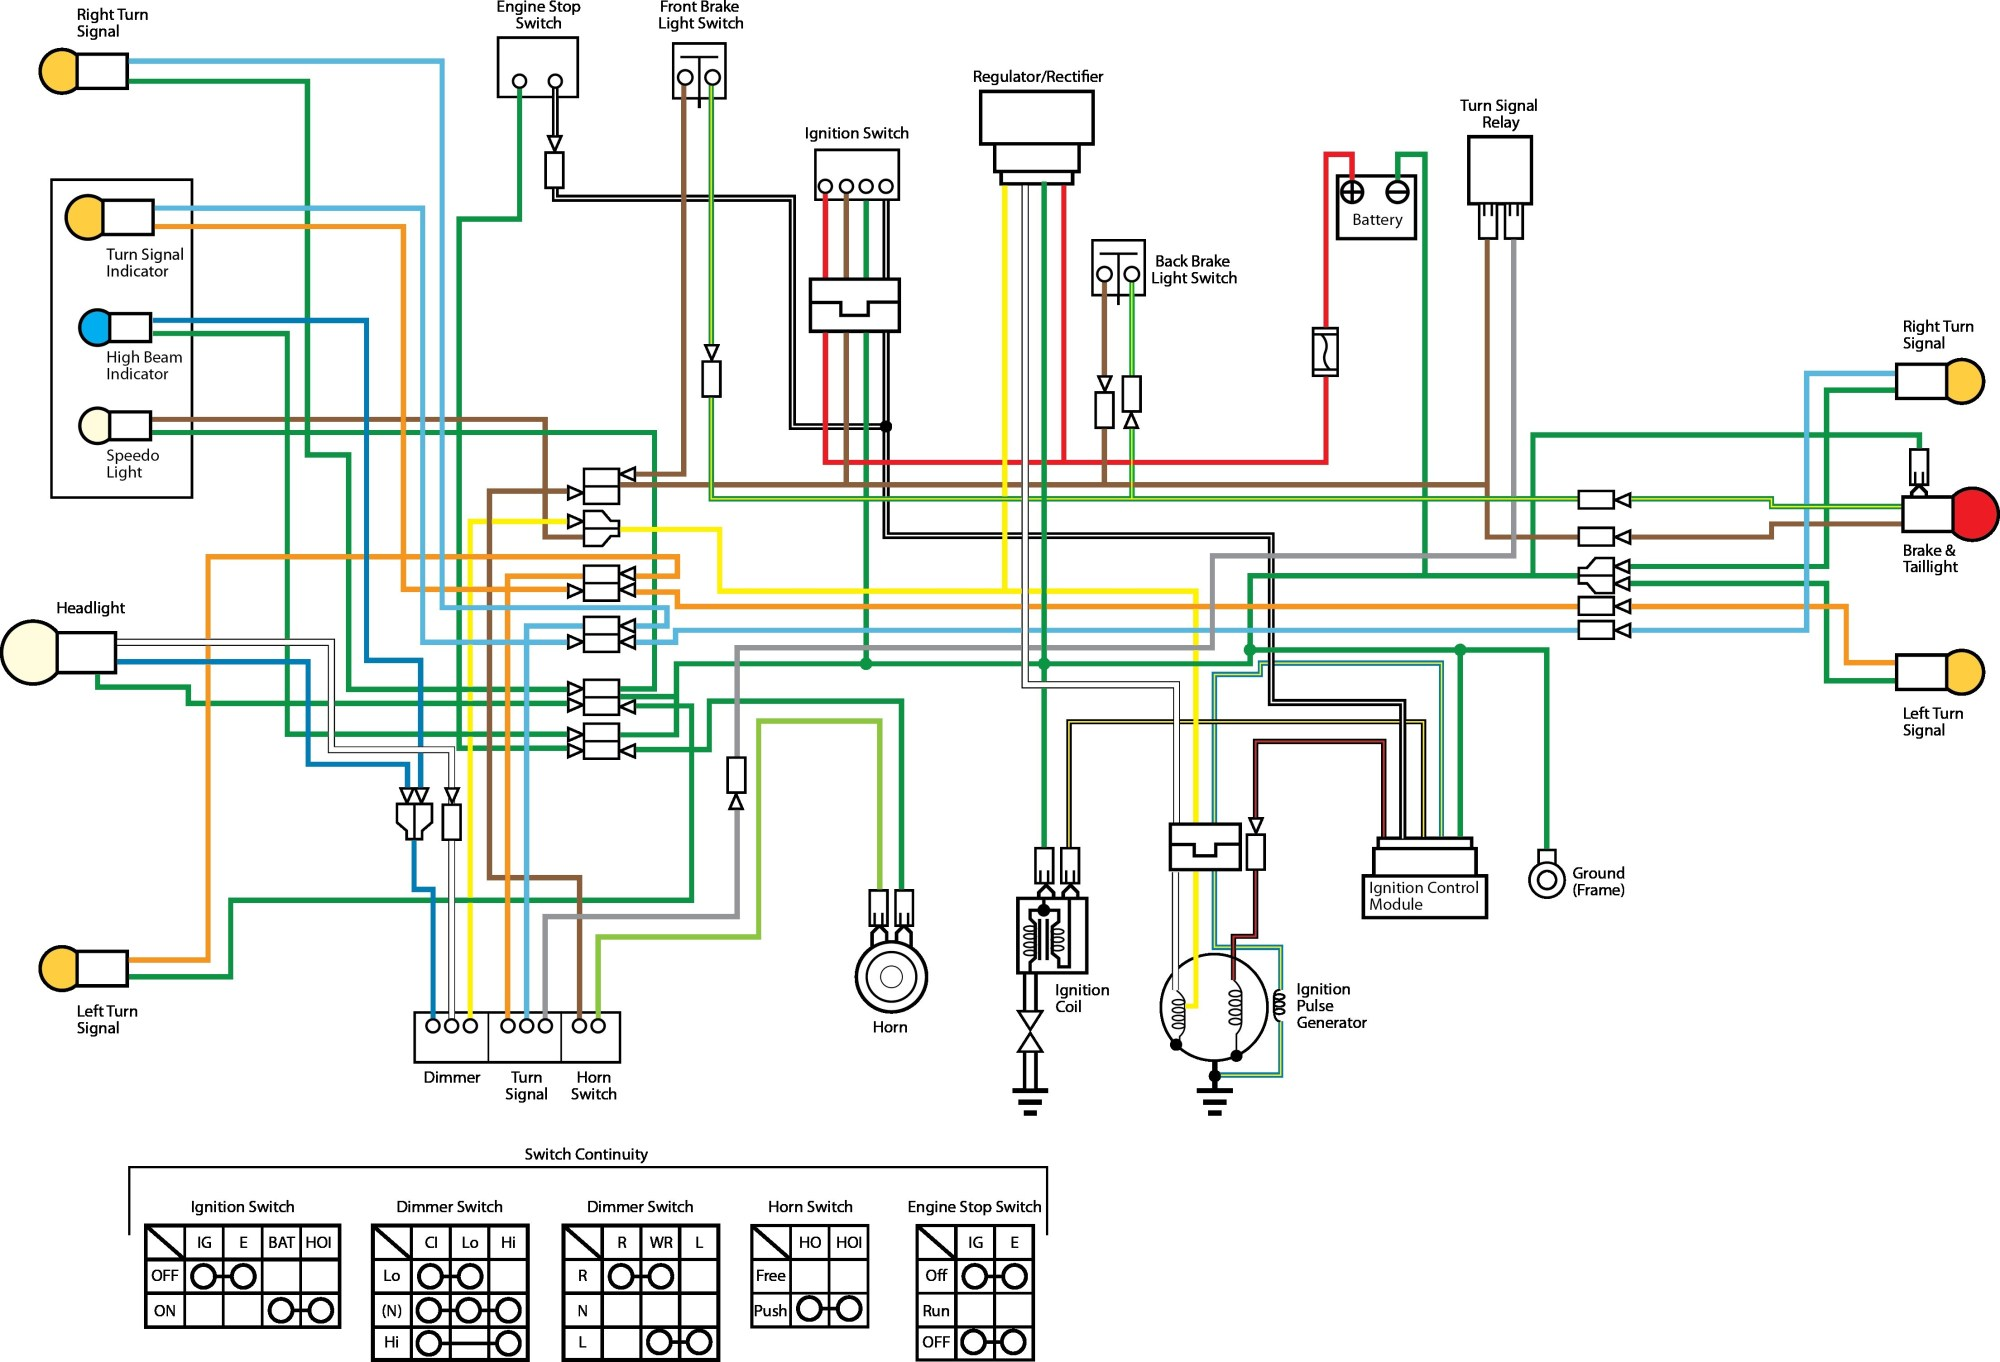 hight resolution of wiring diagram for induction hob best wiring libraryhonda xrm 110 engine parts diagram newmotorspot zanussi induction